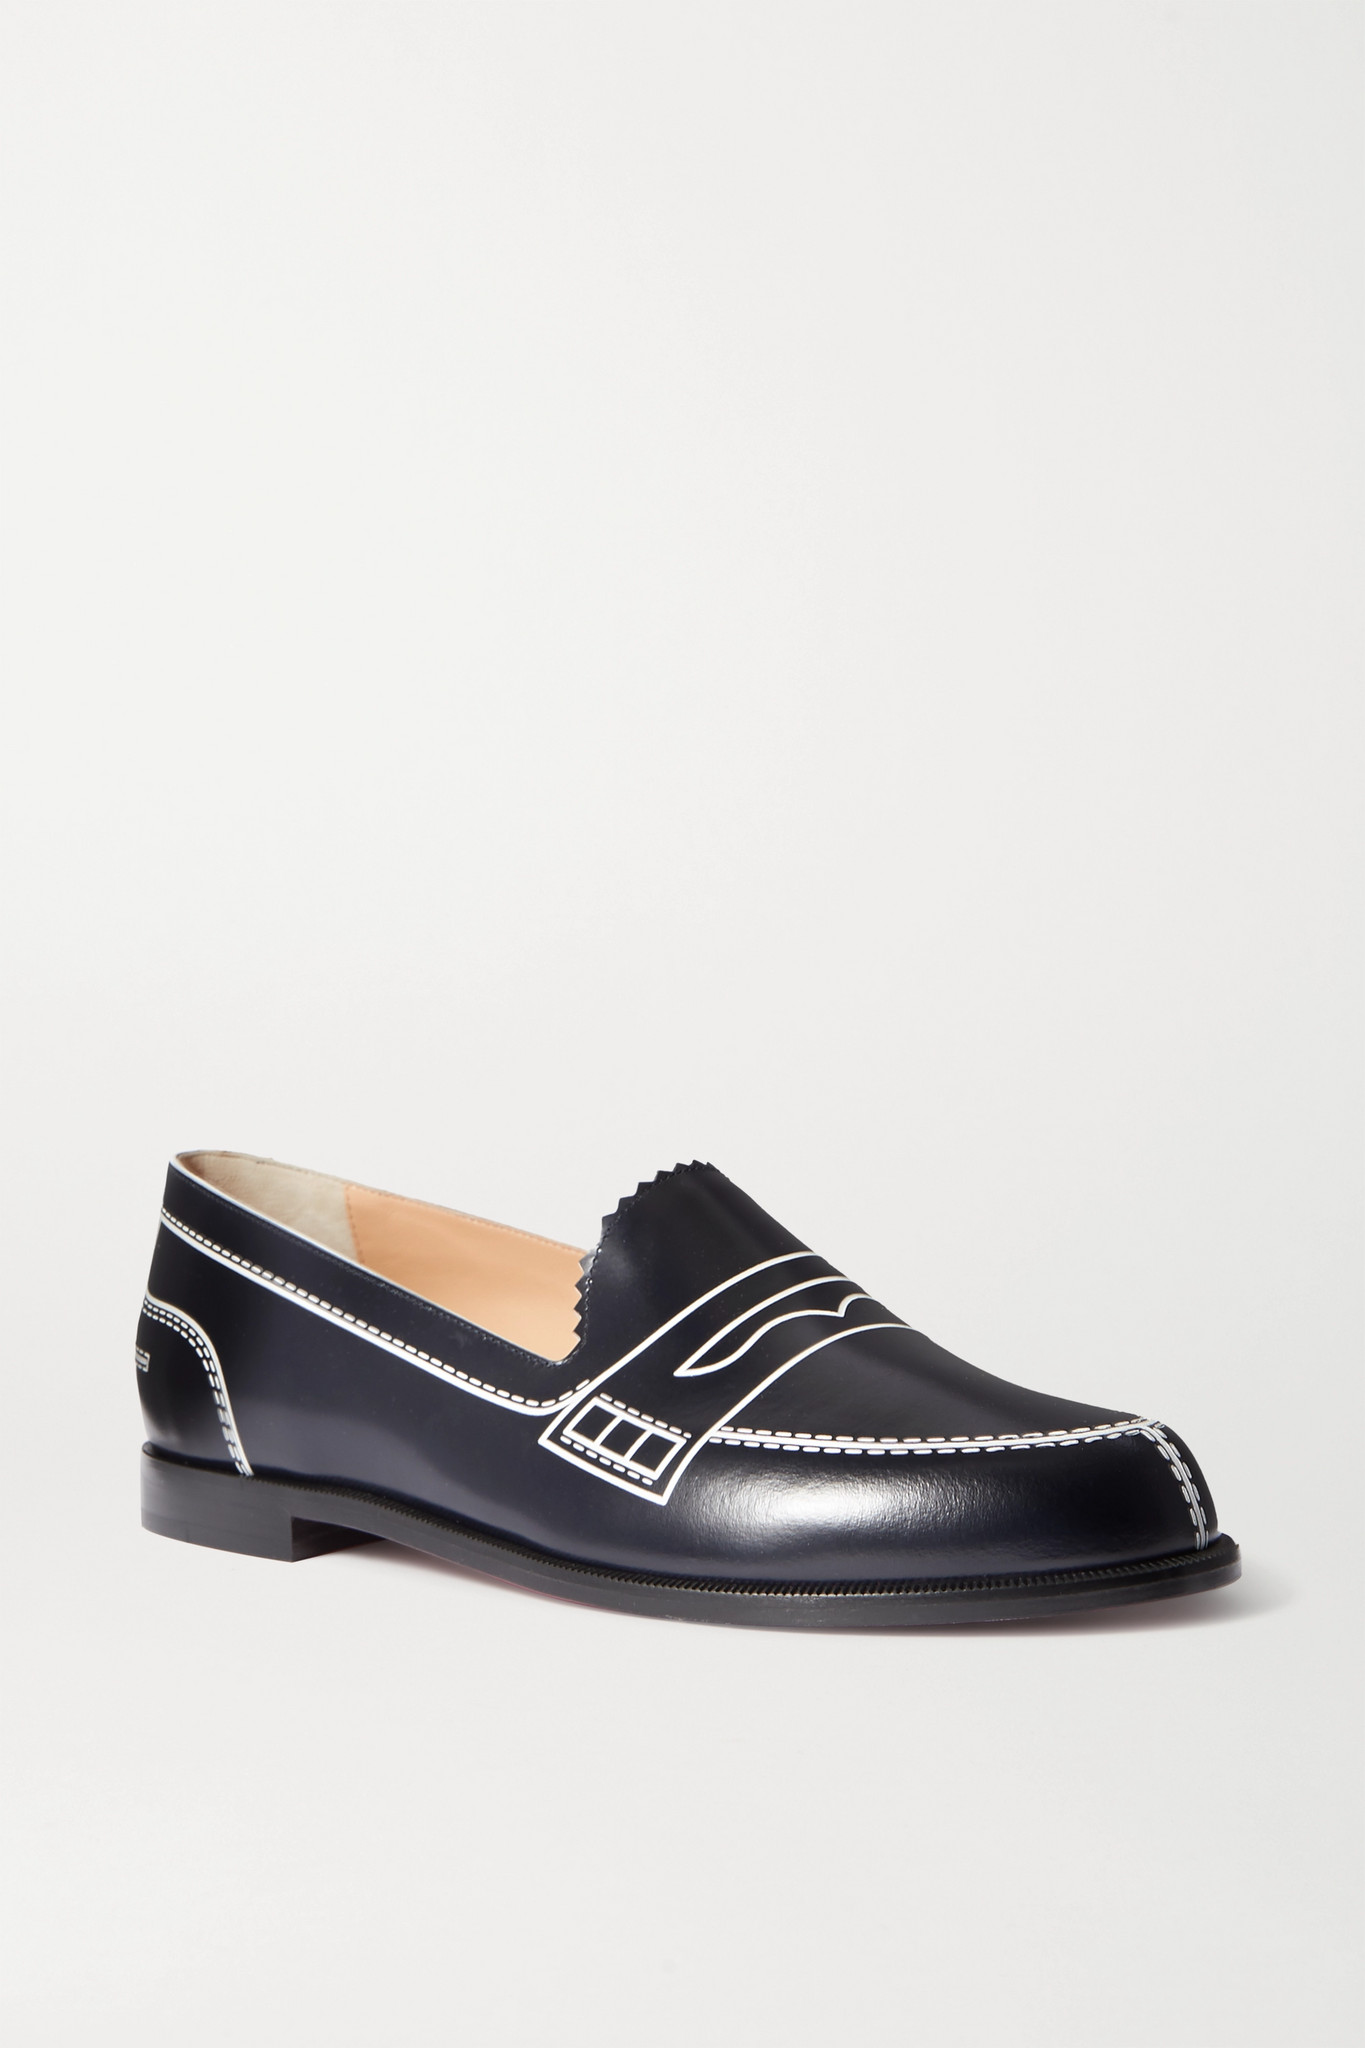 CHRISTIAN LOUBOUTIN - Mocalaureat Printed Leather Loafers - Blue - IT37